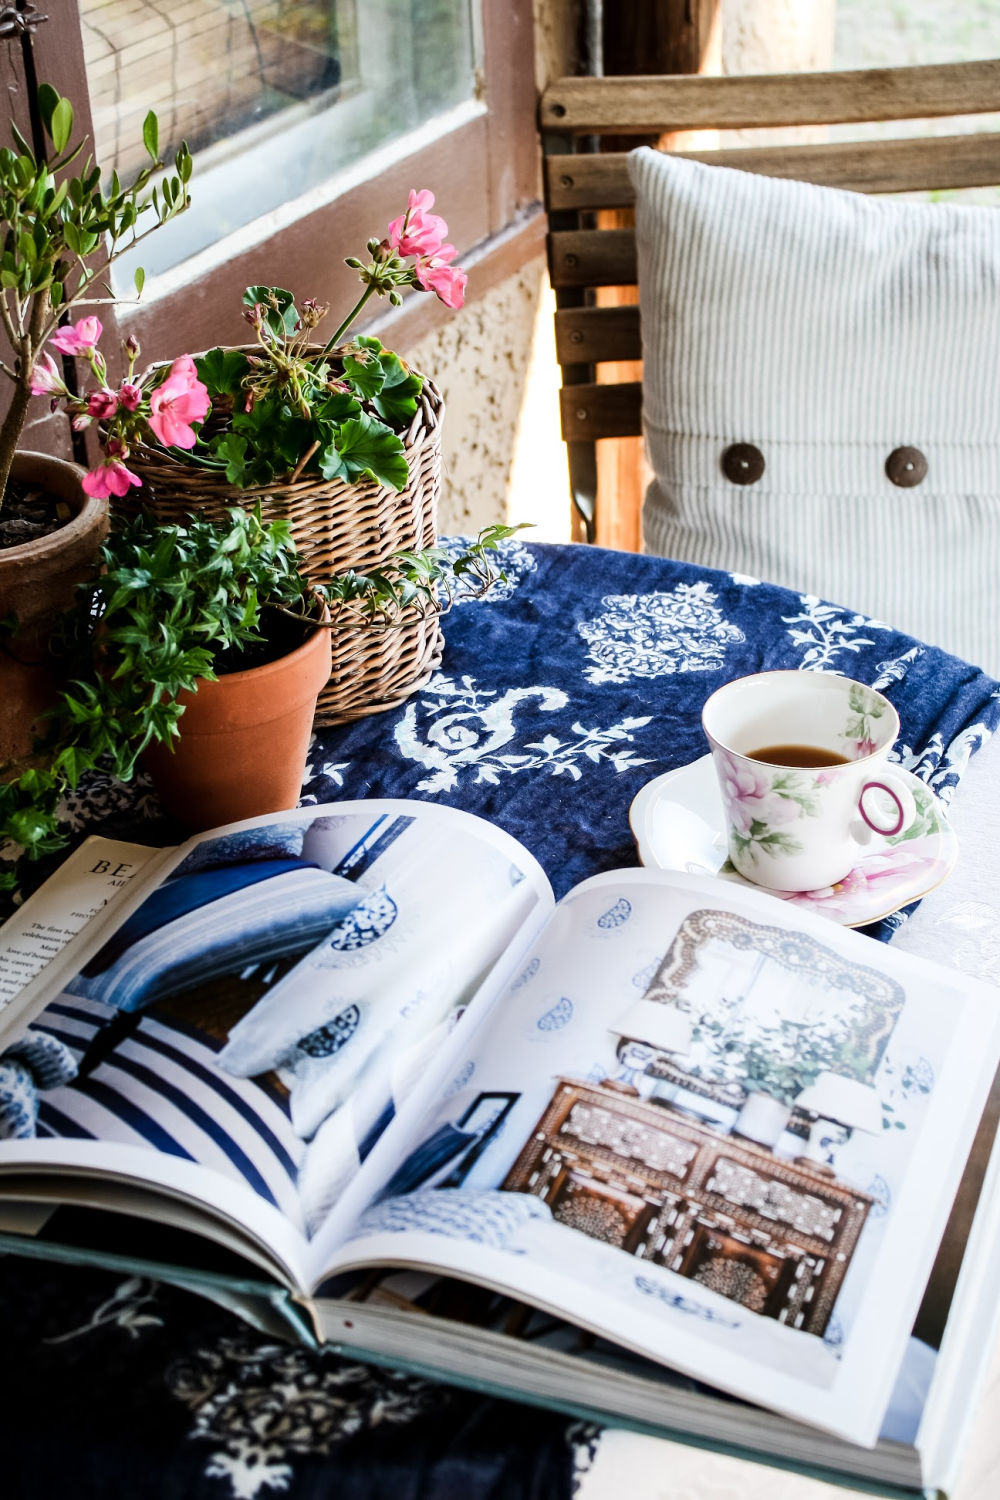 teacup on table with decorating book and flowers